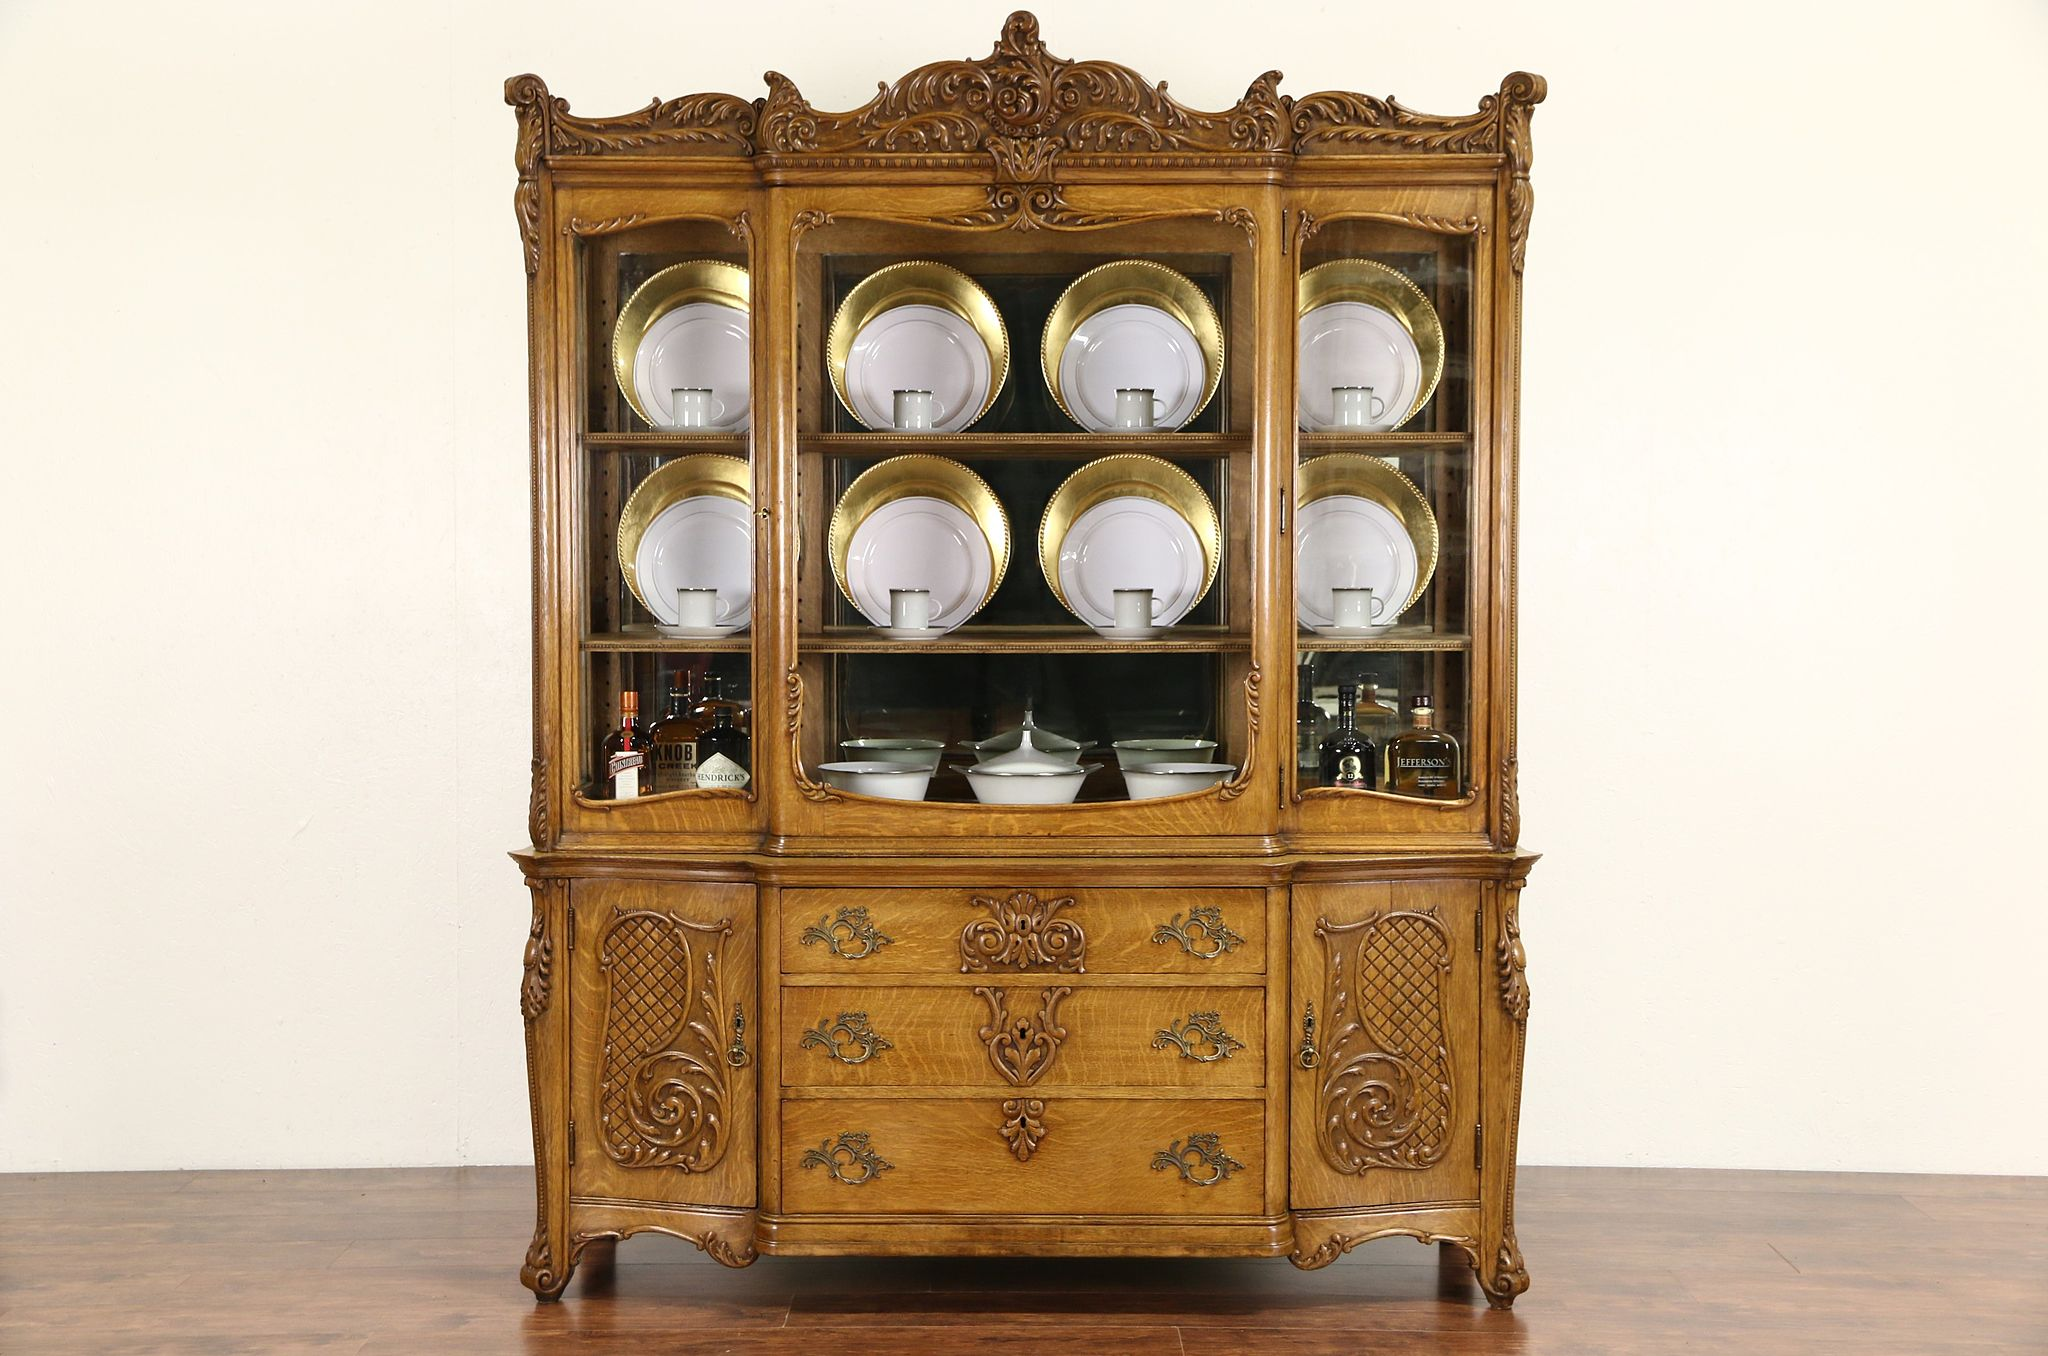 Superieur Oak Victorian Carved 1910 Antique China Display Cabinet, Wavy Glass U0026  Mirrors